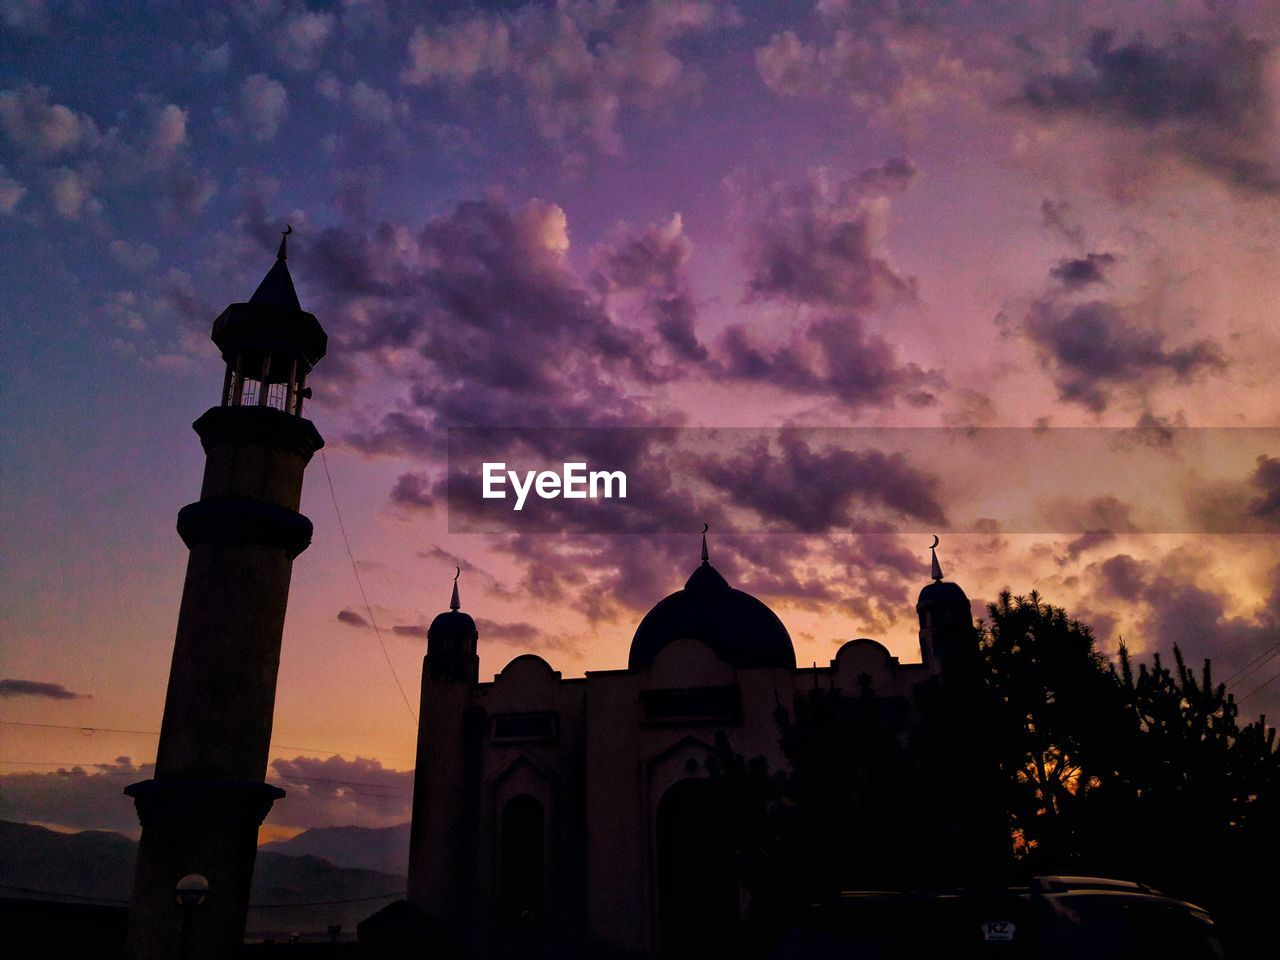 sunset, architecture, built structure, sky, building exterior, religion, place of worship, cloud - sky, spirituality, history, silhouette, travel destinations, dome, outdoors, no people, tree, nature, day